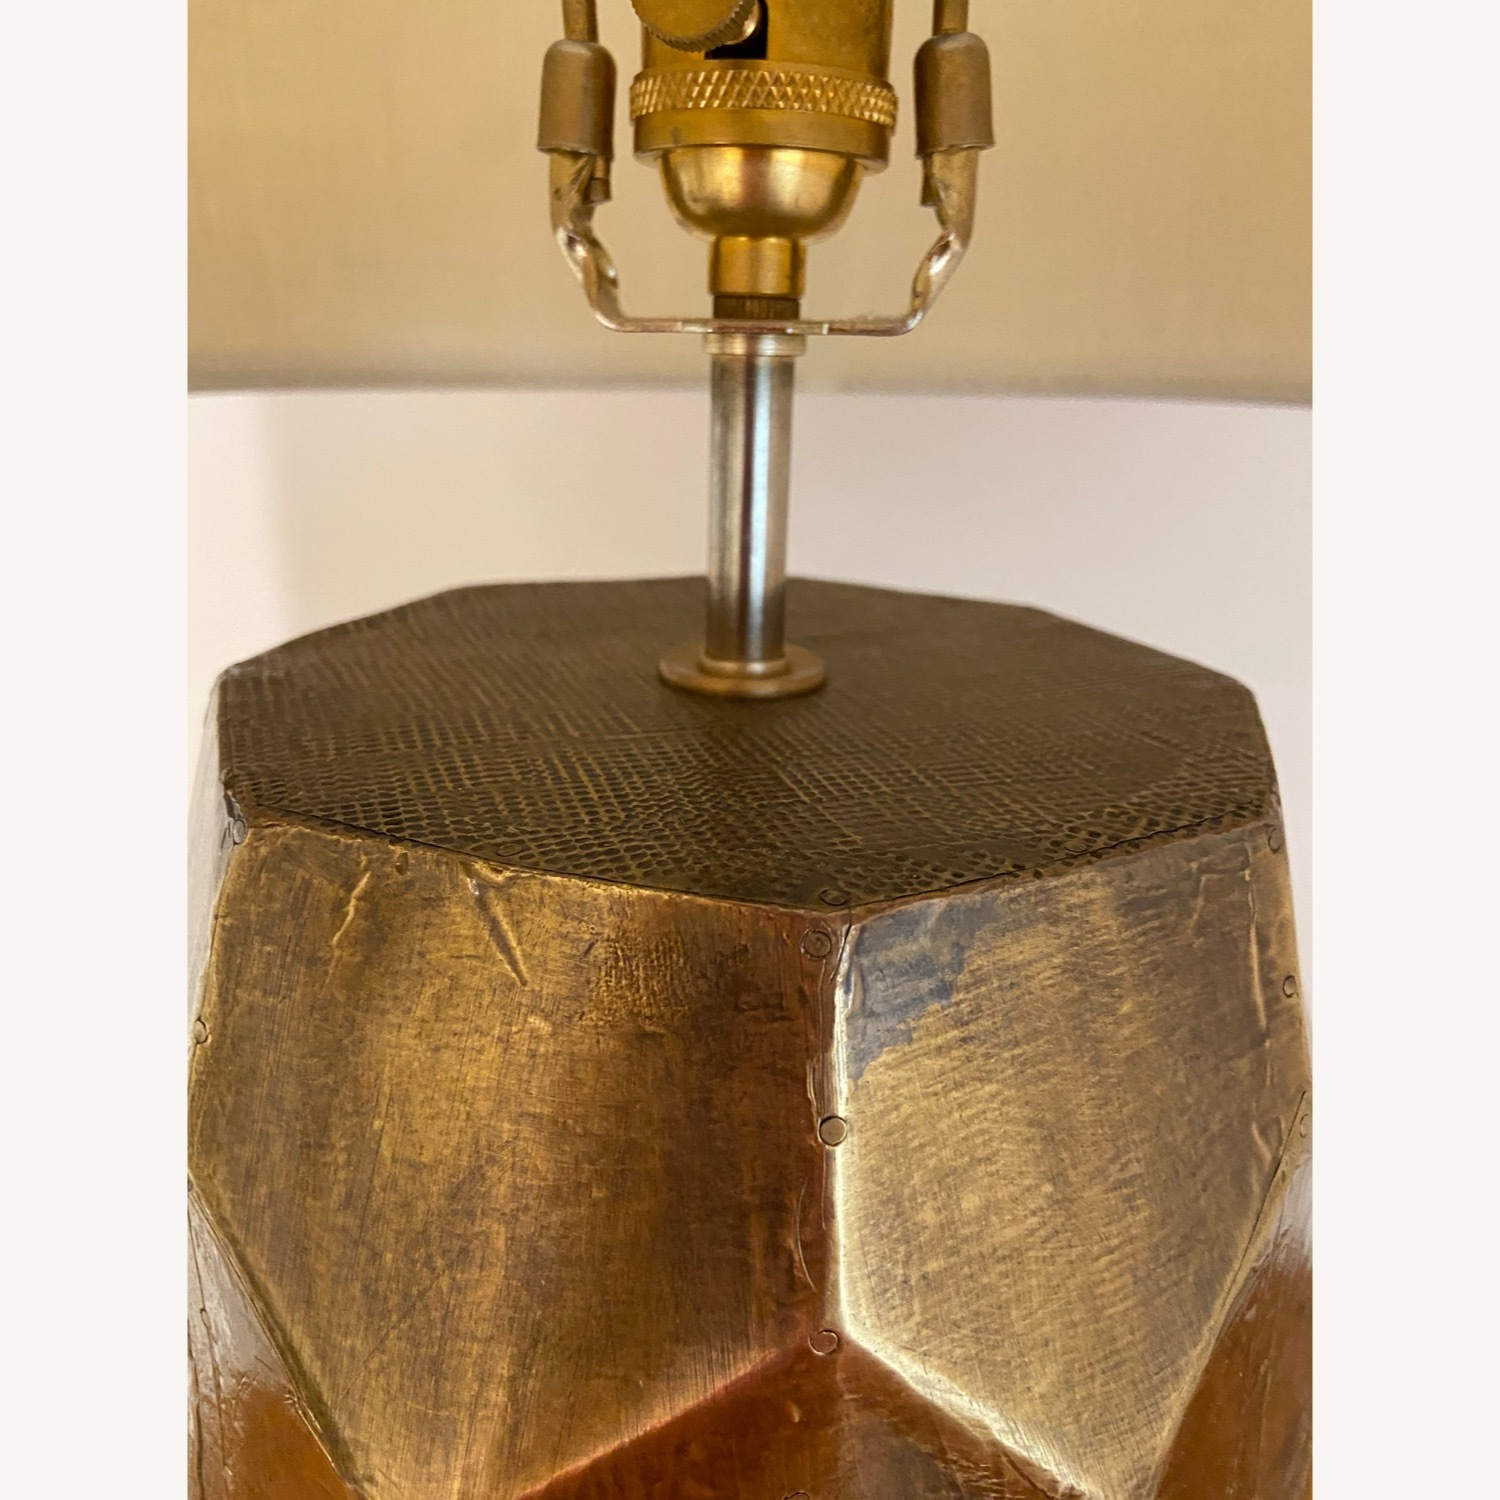 Pottery Barn Hammered Golden Honeycomb Lamps (2) - image-2